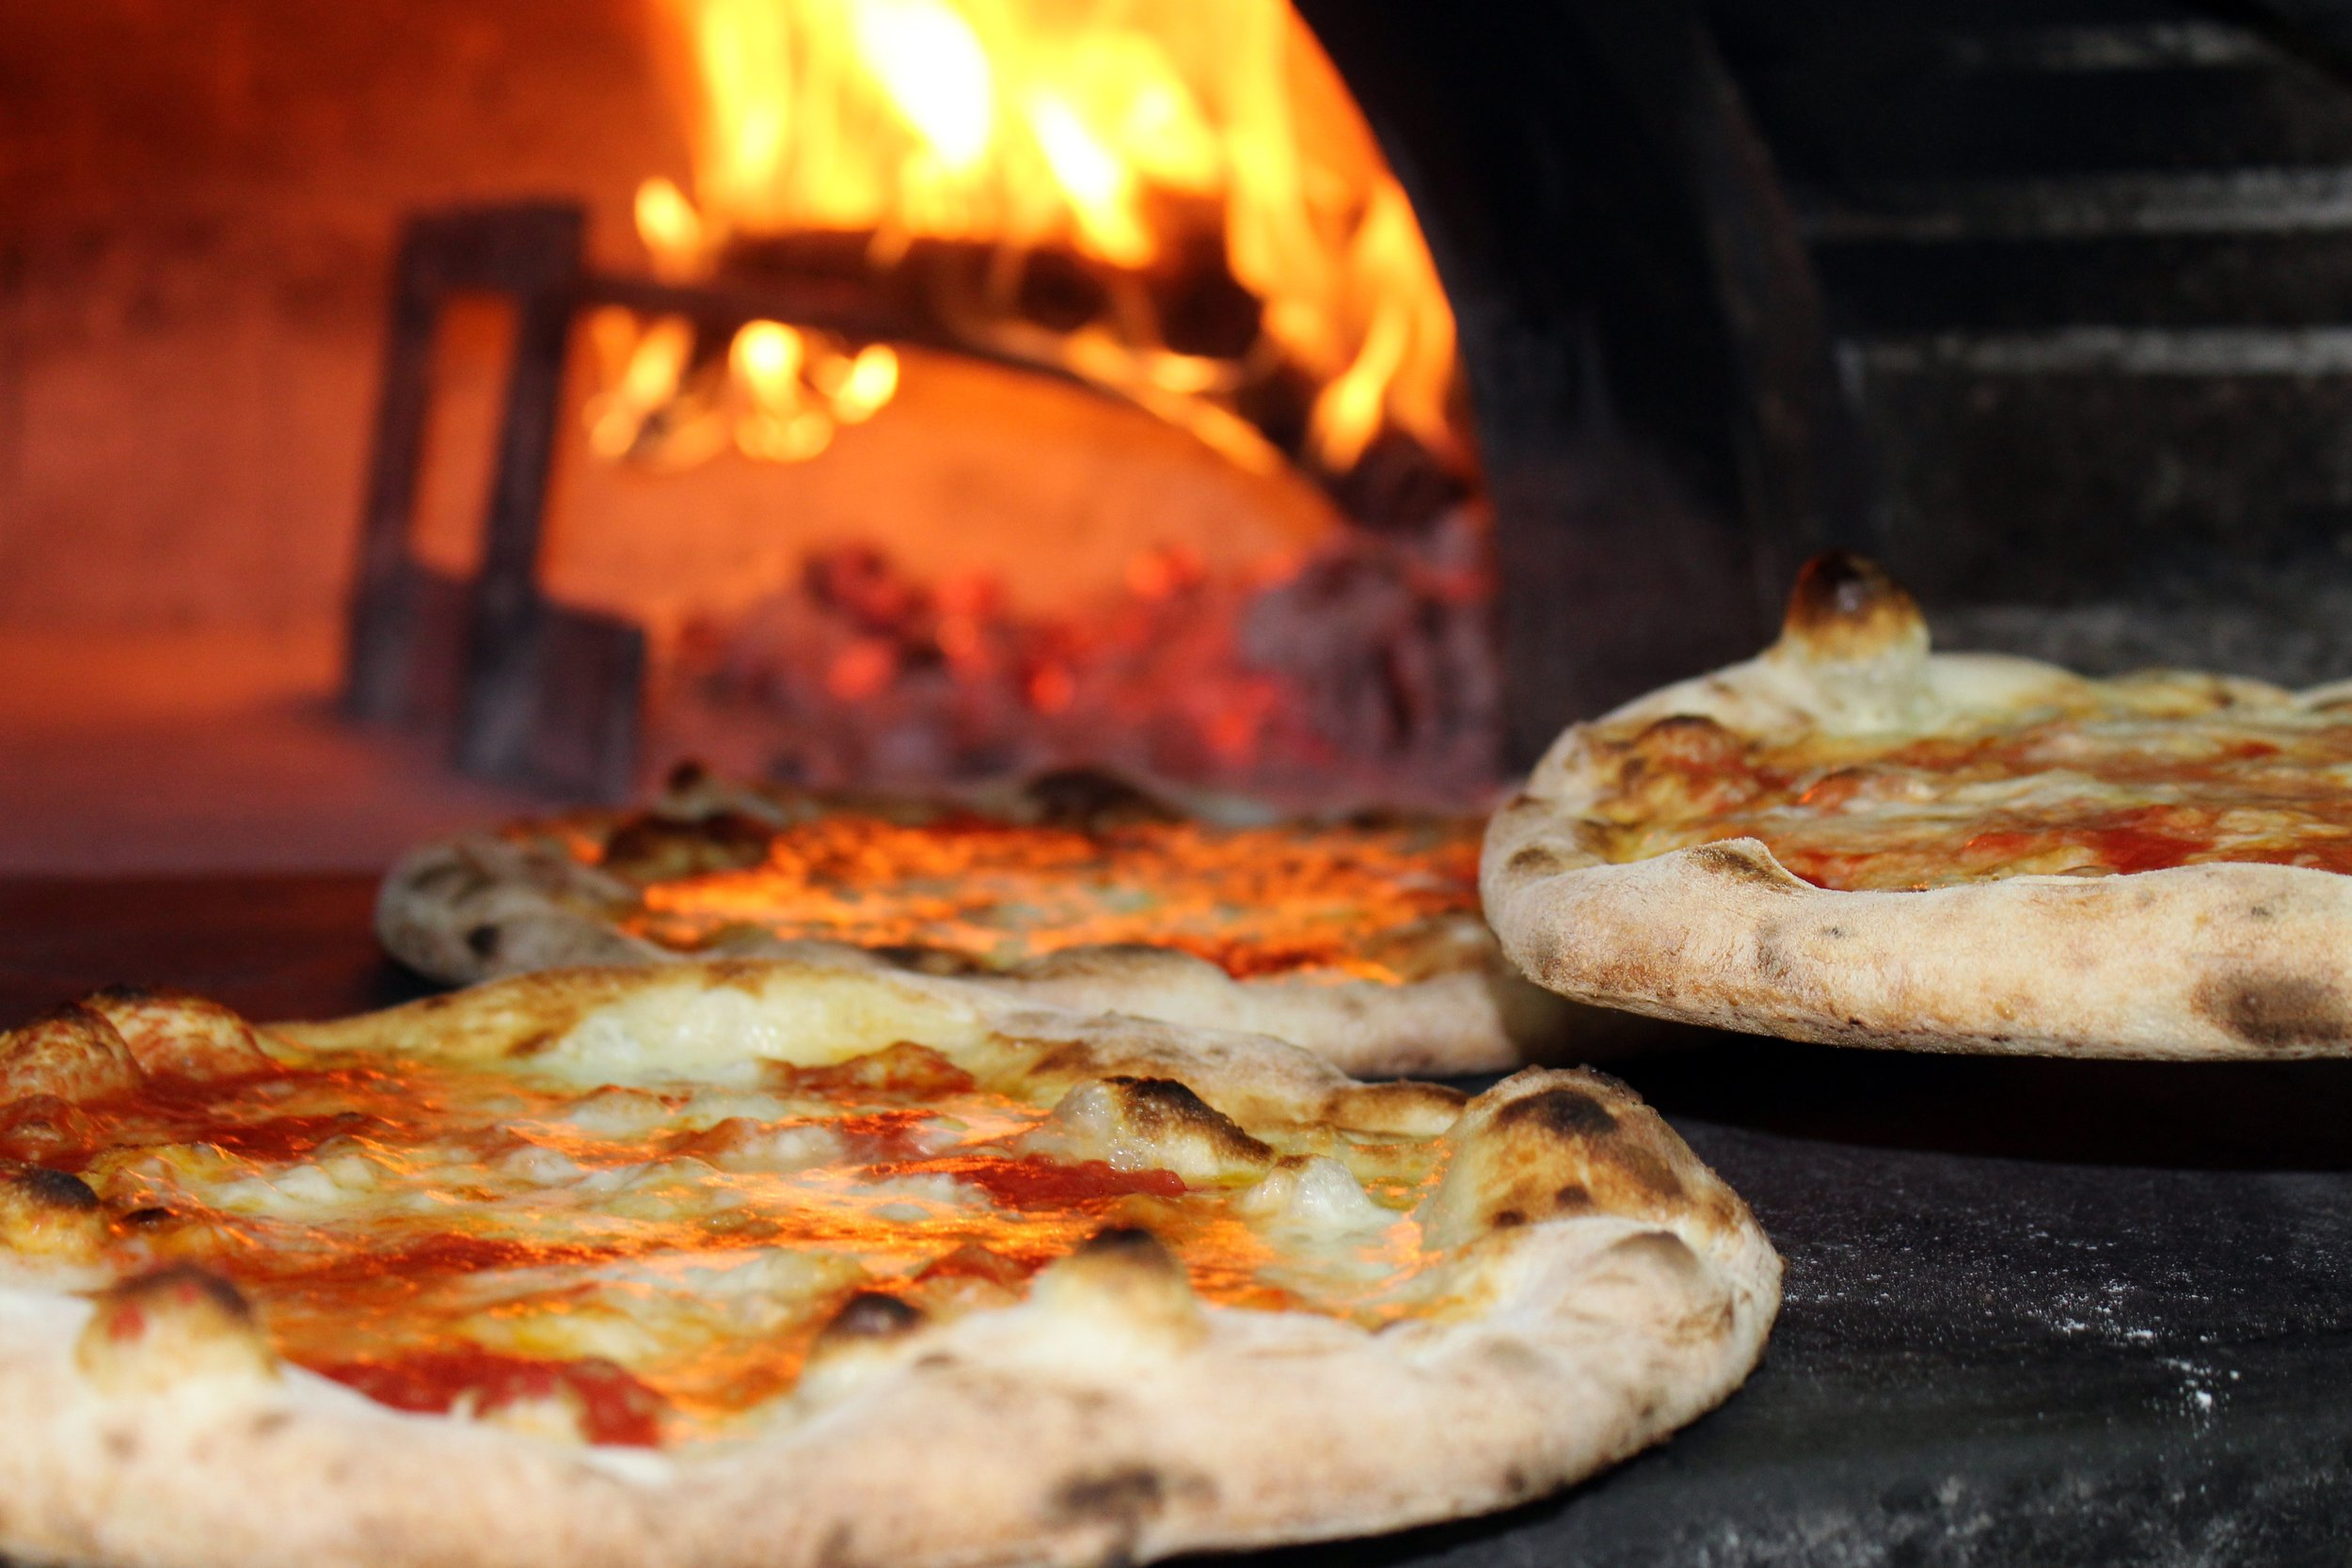 Pizza is one of New York's speciality foods (particularly in Little Italy)